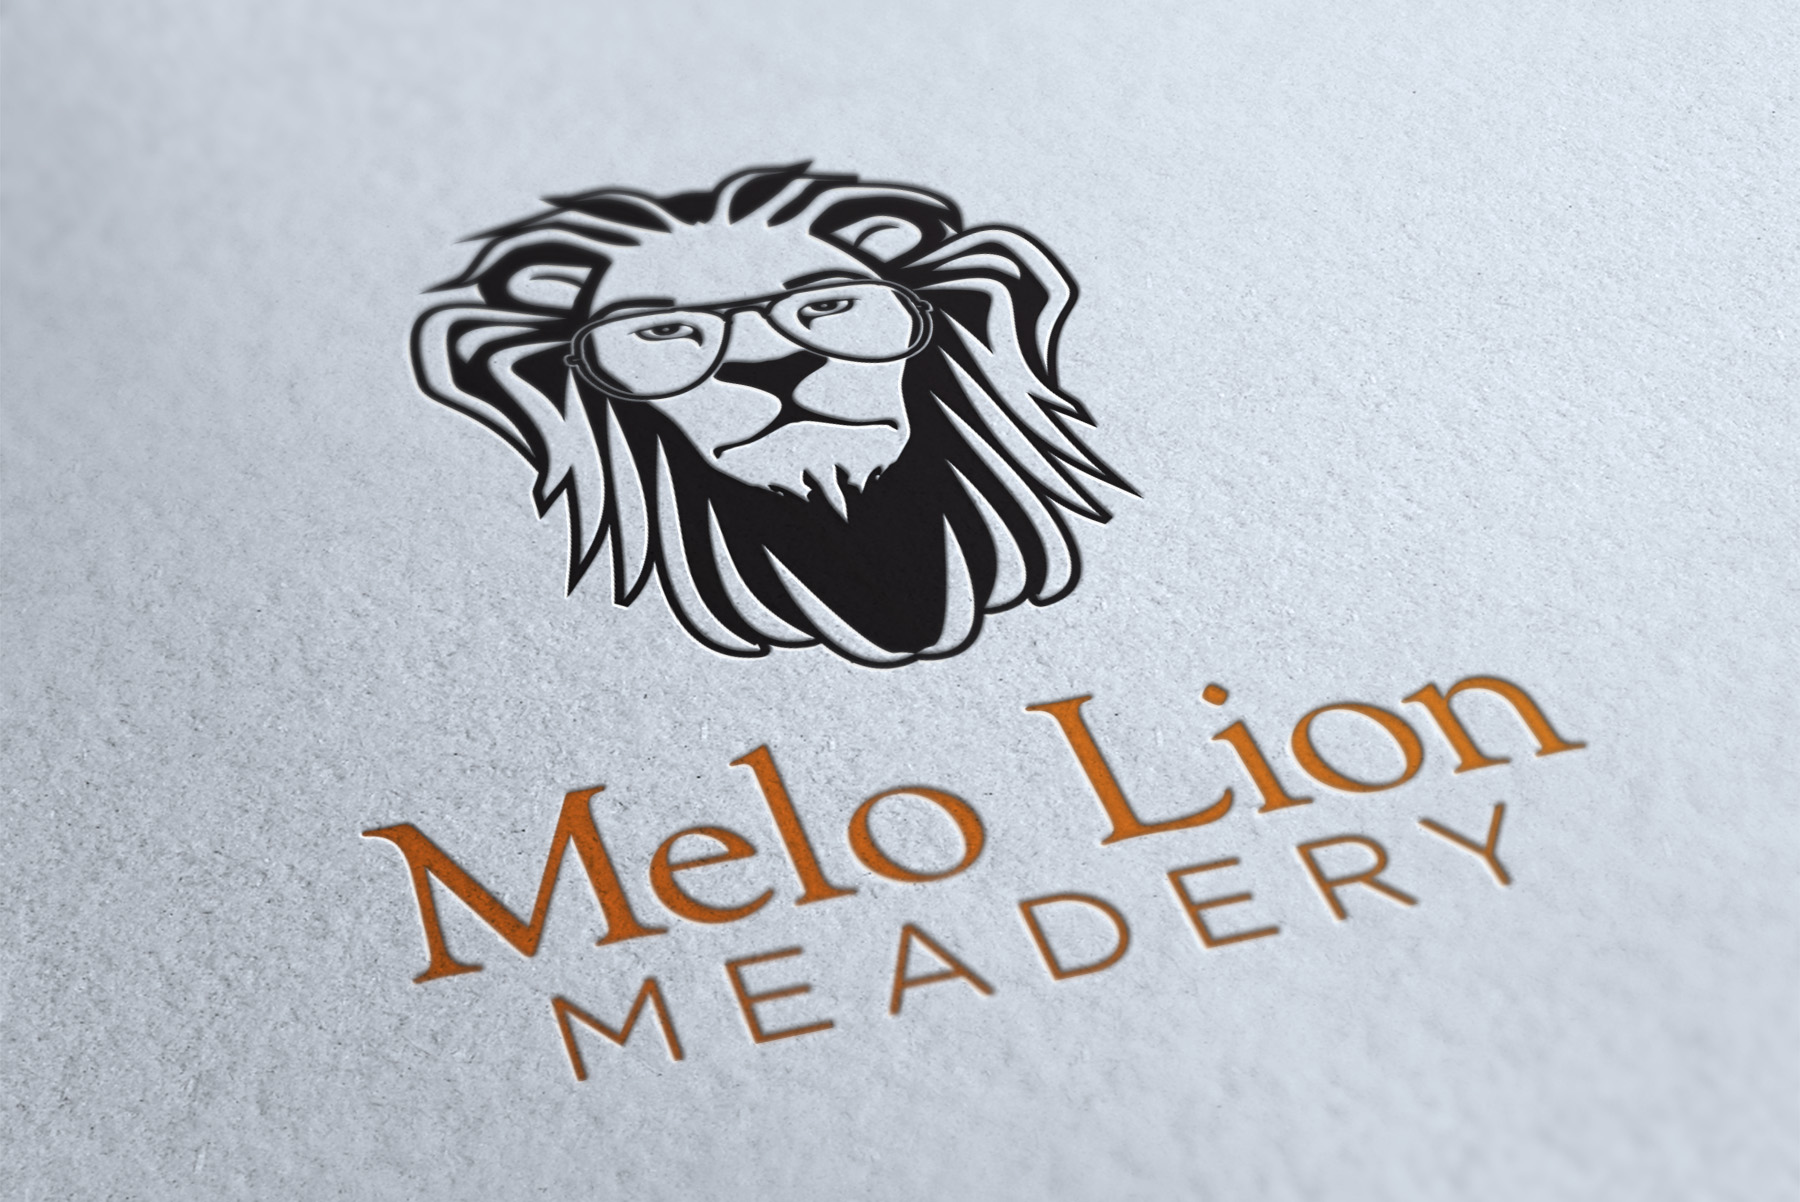 Melo Lion Meadery